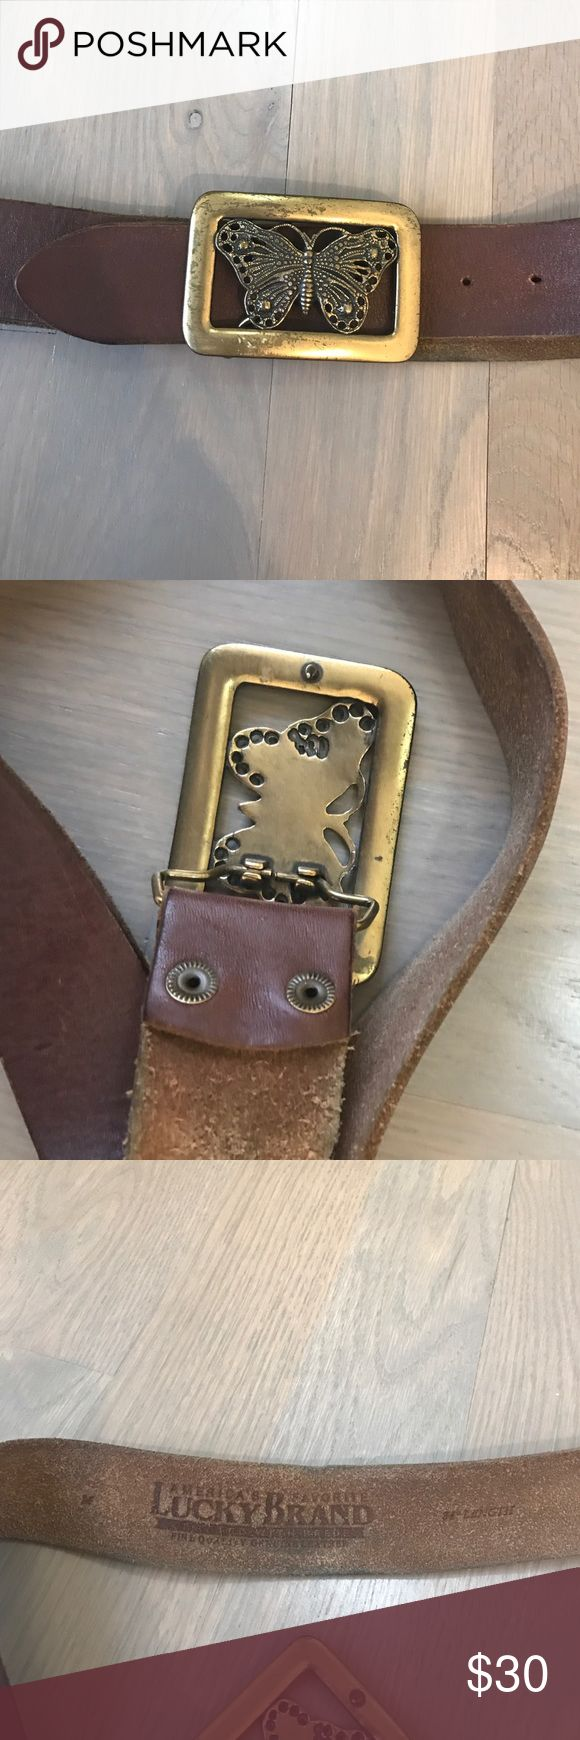 Luck Brand Belt with brass butterfly buckle Lucky brand real leather belt in a soft brown size medium with heavy brass belt buckle Lucky Brand Accessories Belts